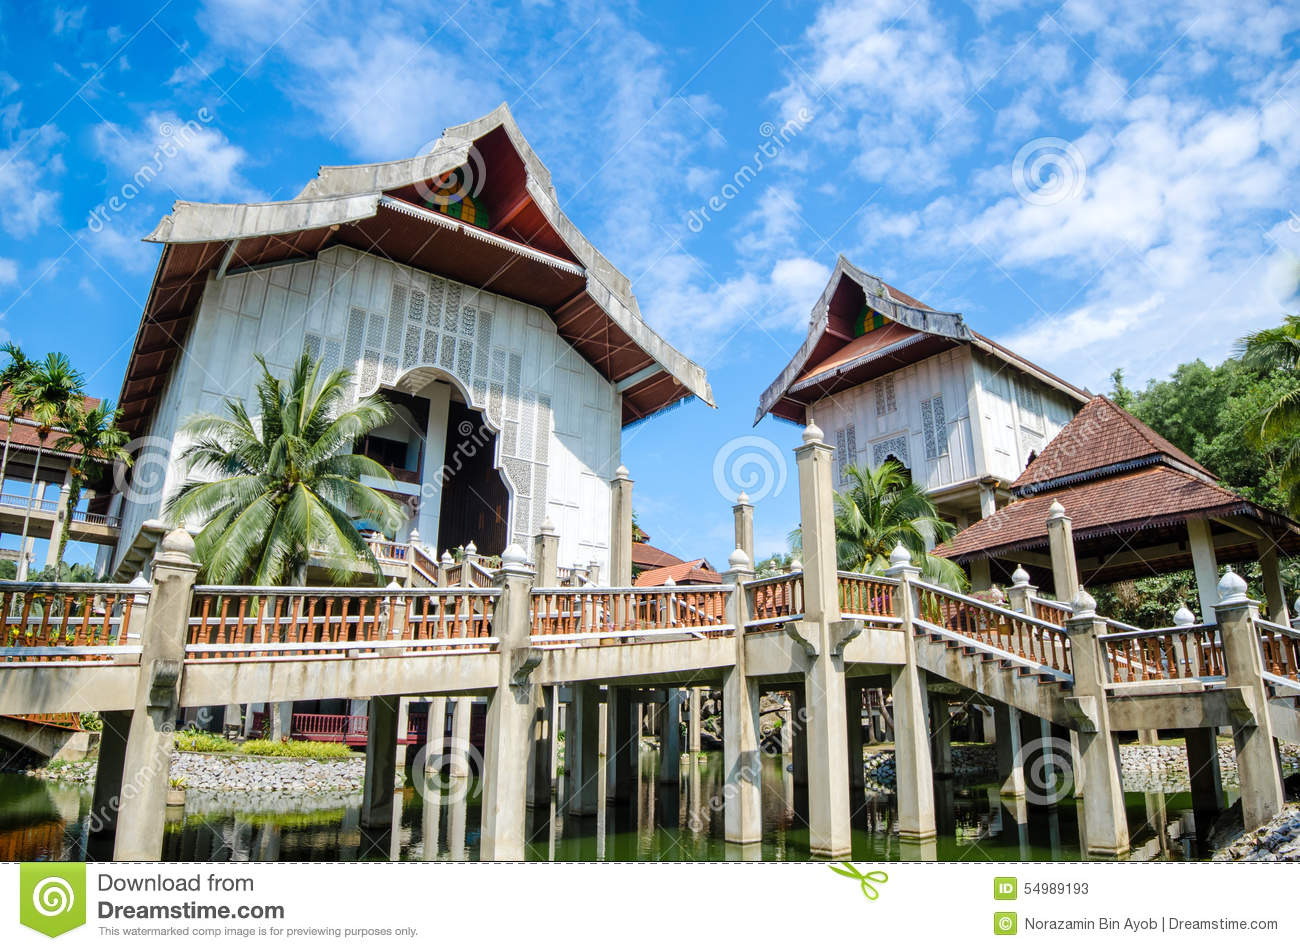 The largest museum in South East Asia